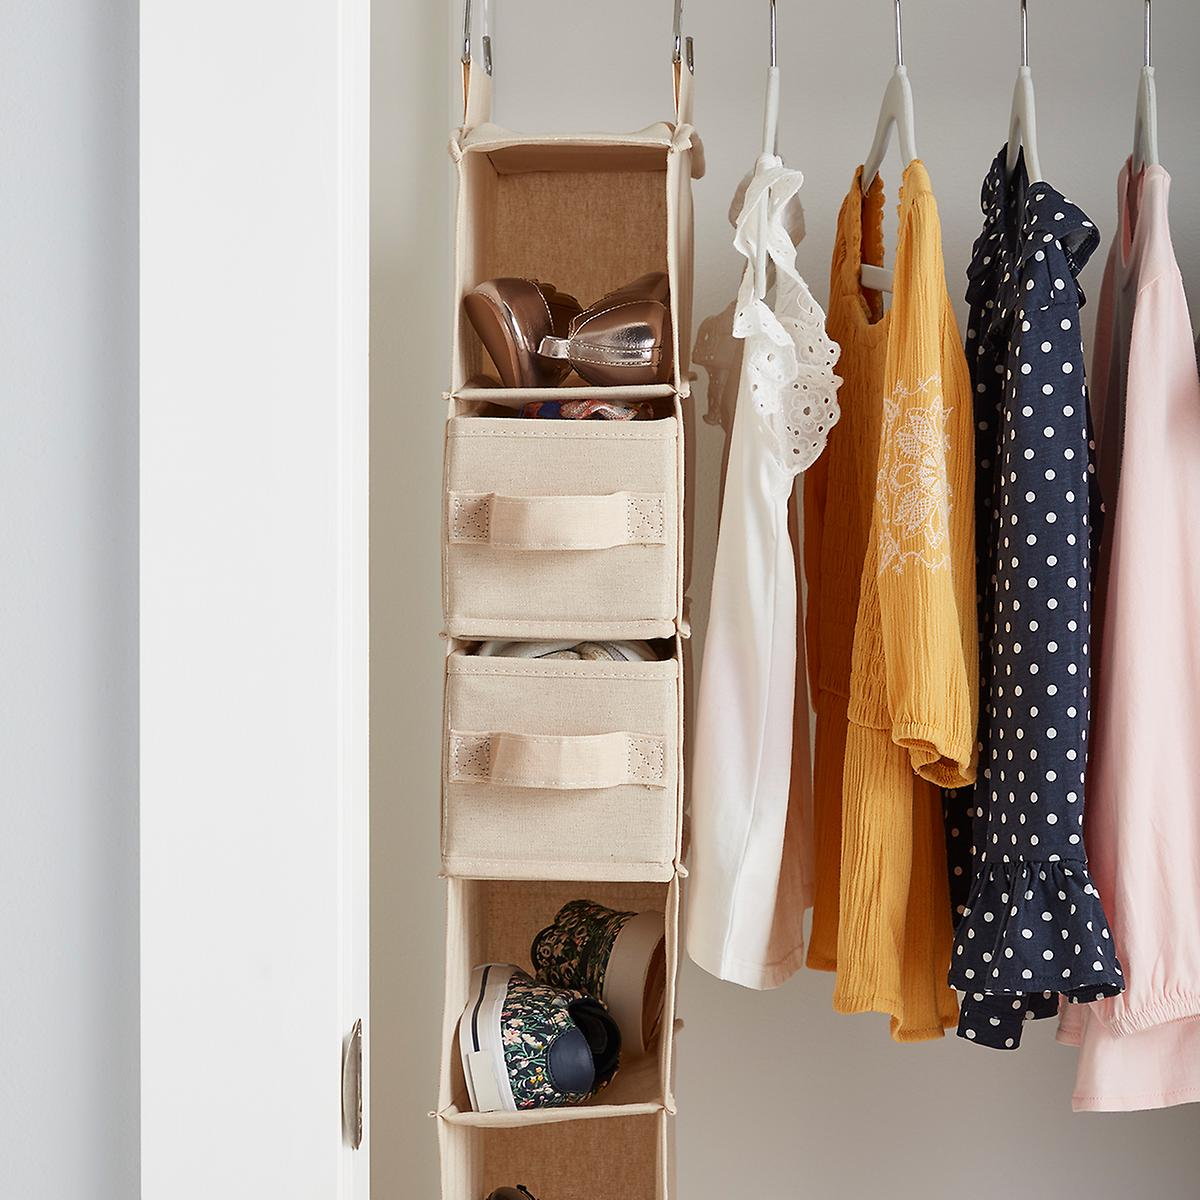 Hanging Shoe Organizer in Closet